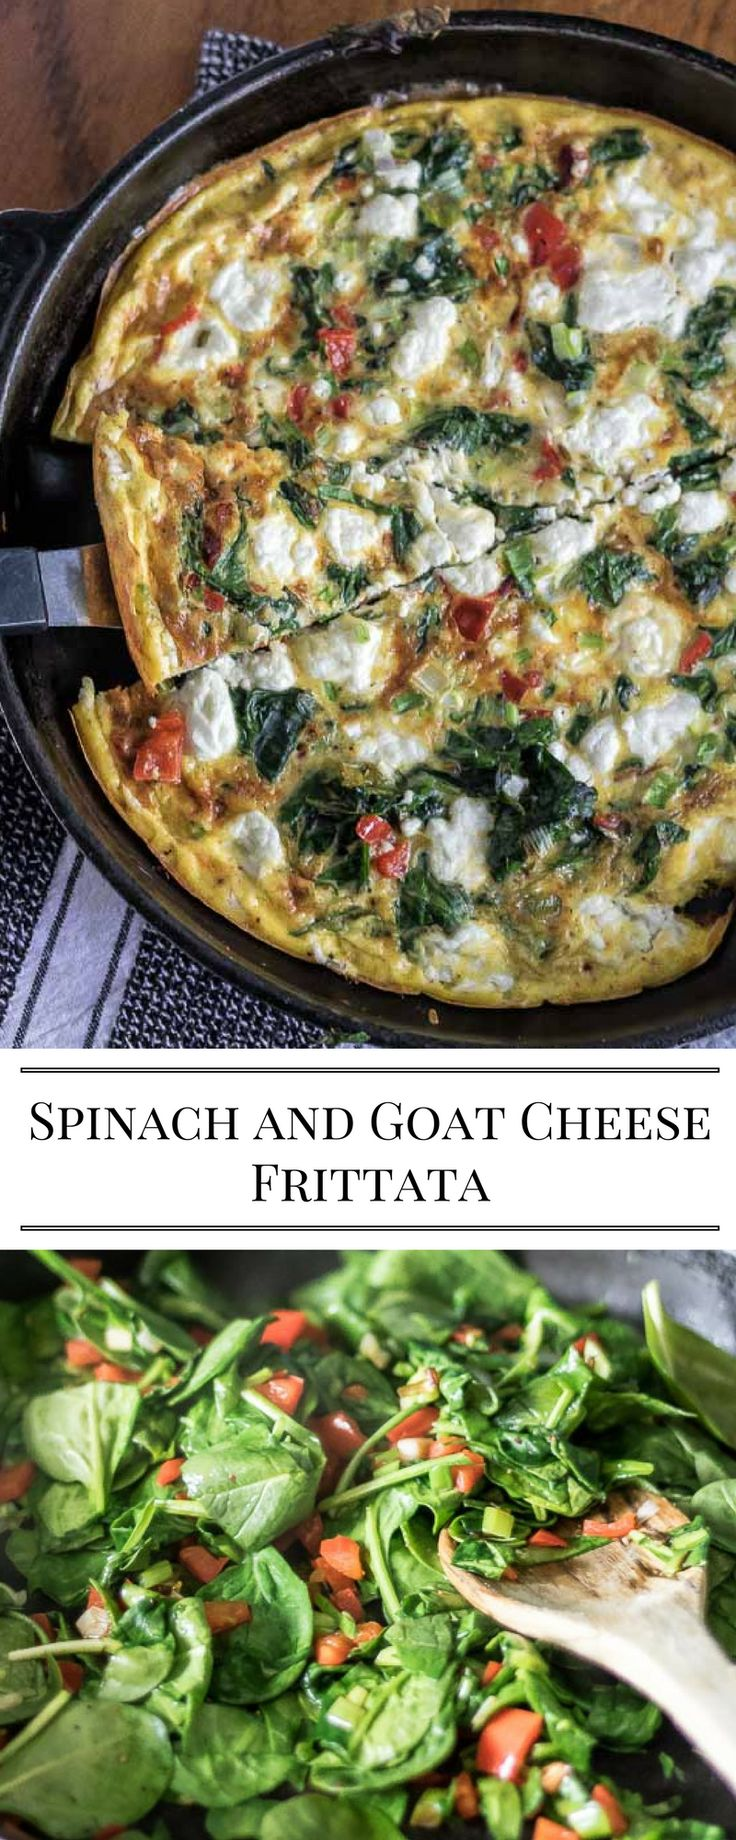 I love frittatas! They are quick, nutritious and packed full of veggies. Great for a quick dinner or a holiday morning breakfast or brunch.  Spinach and Goat Cheese Frittata